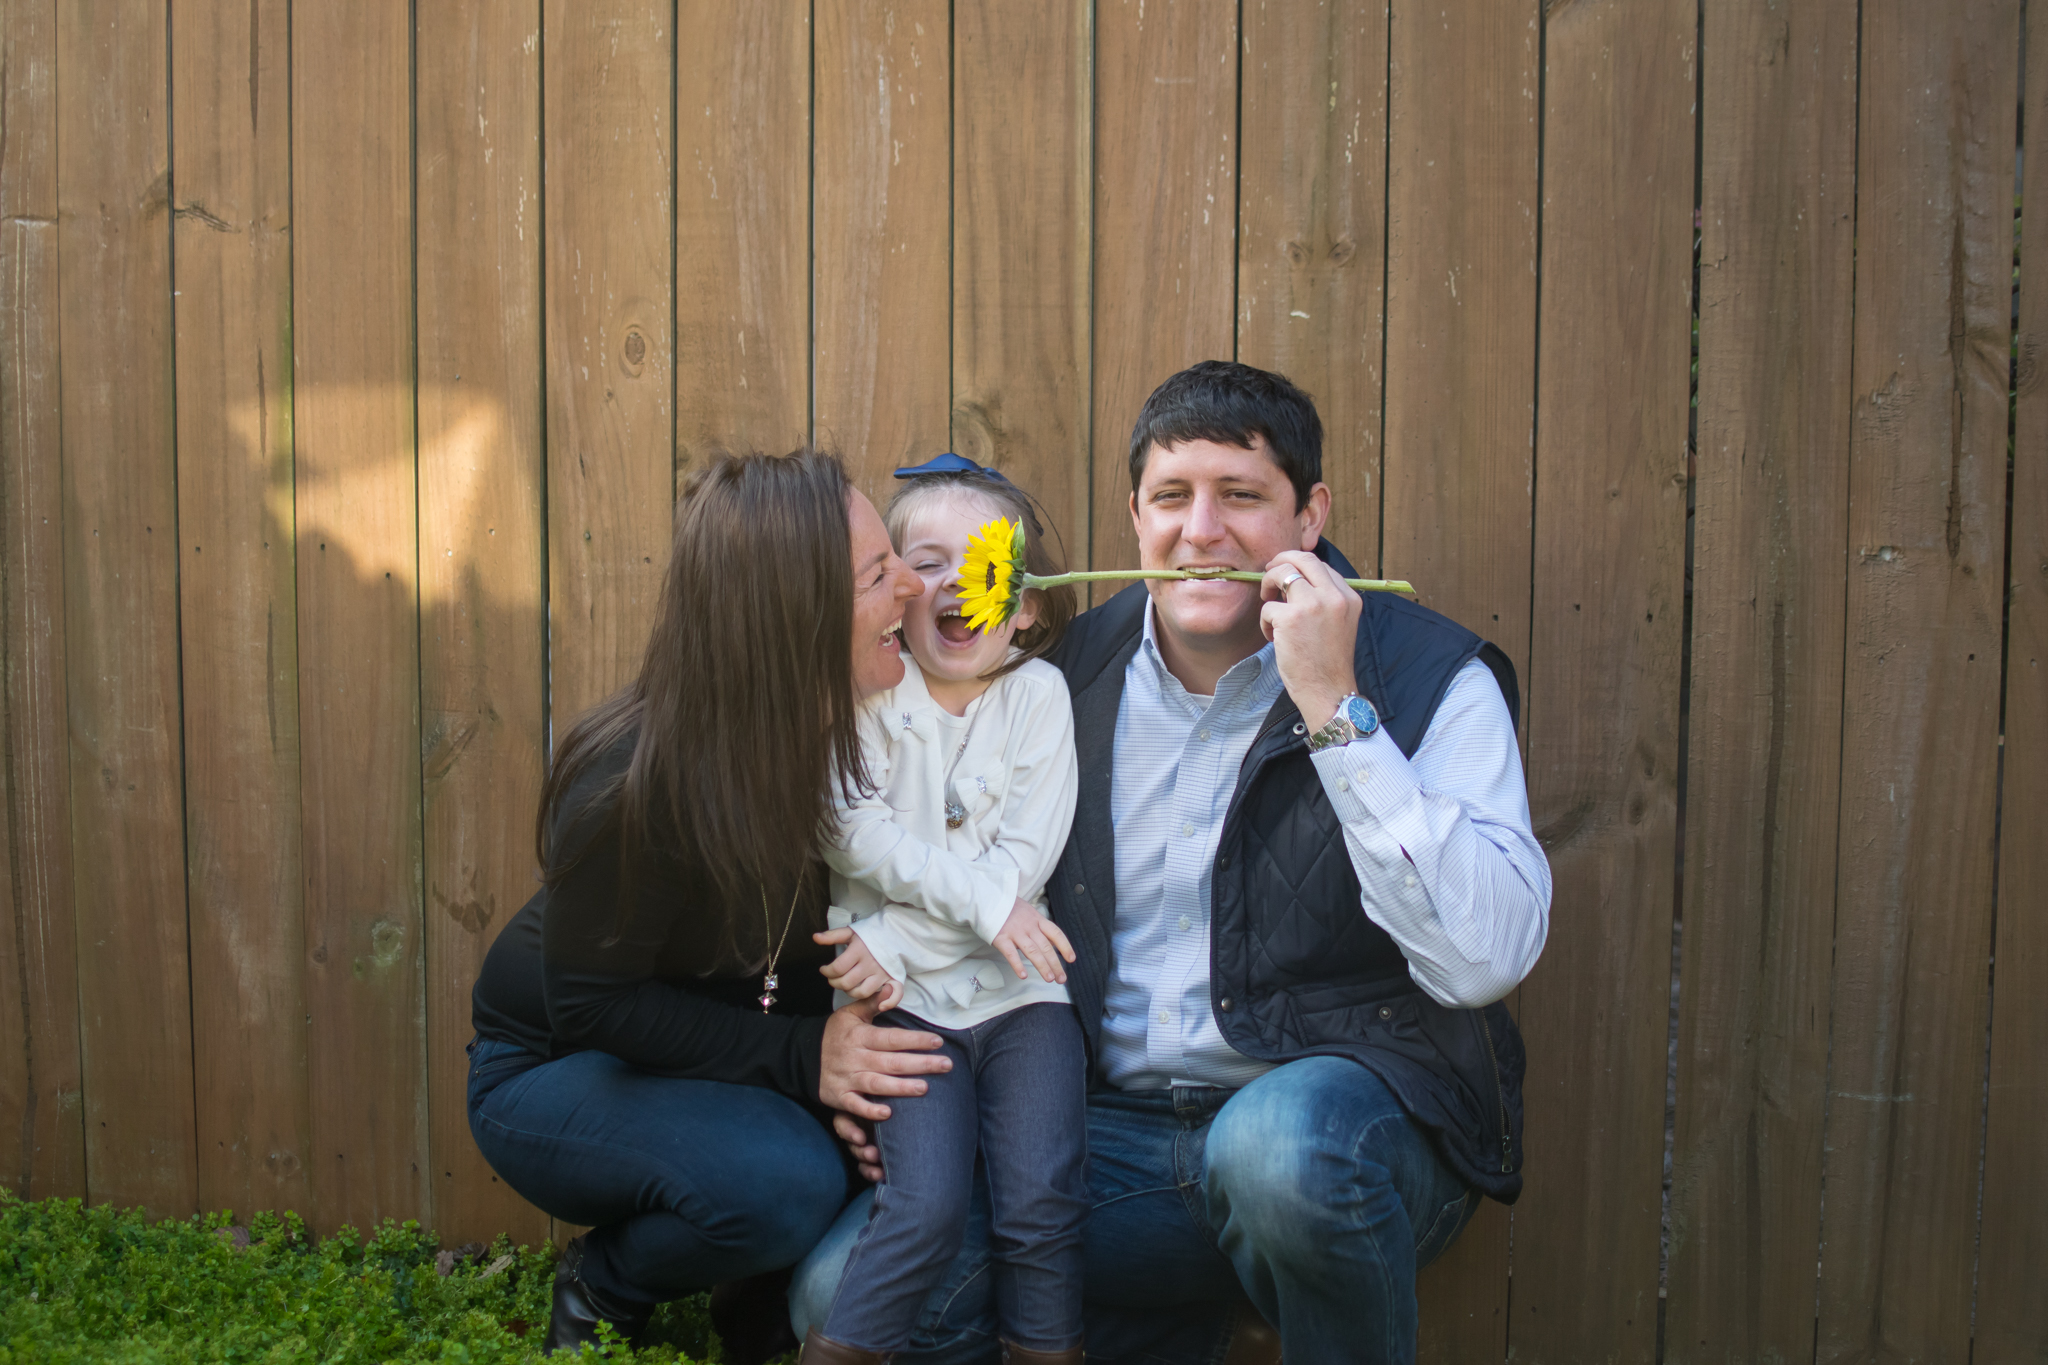 this is an image of a father holding a flower in his mouth, while the young girl and her mom are laughing